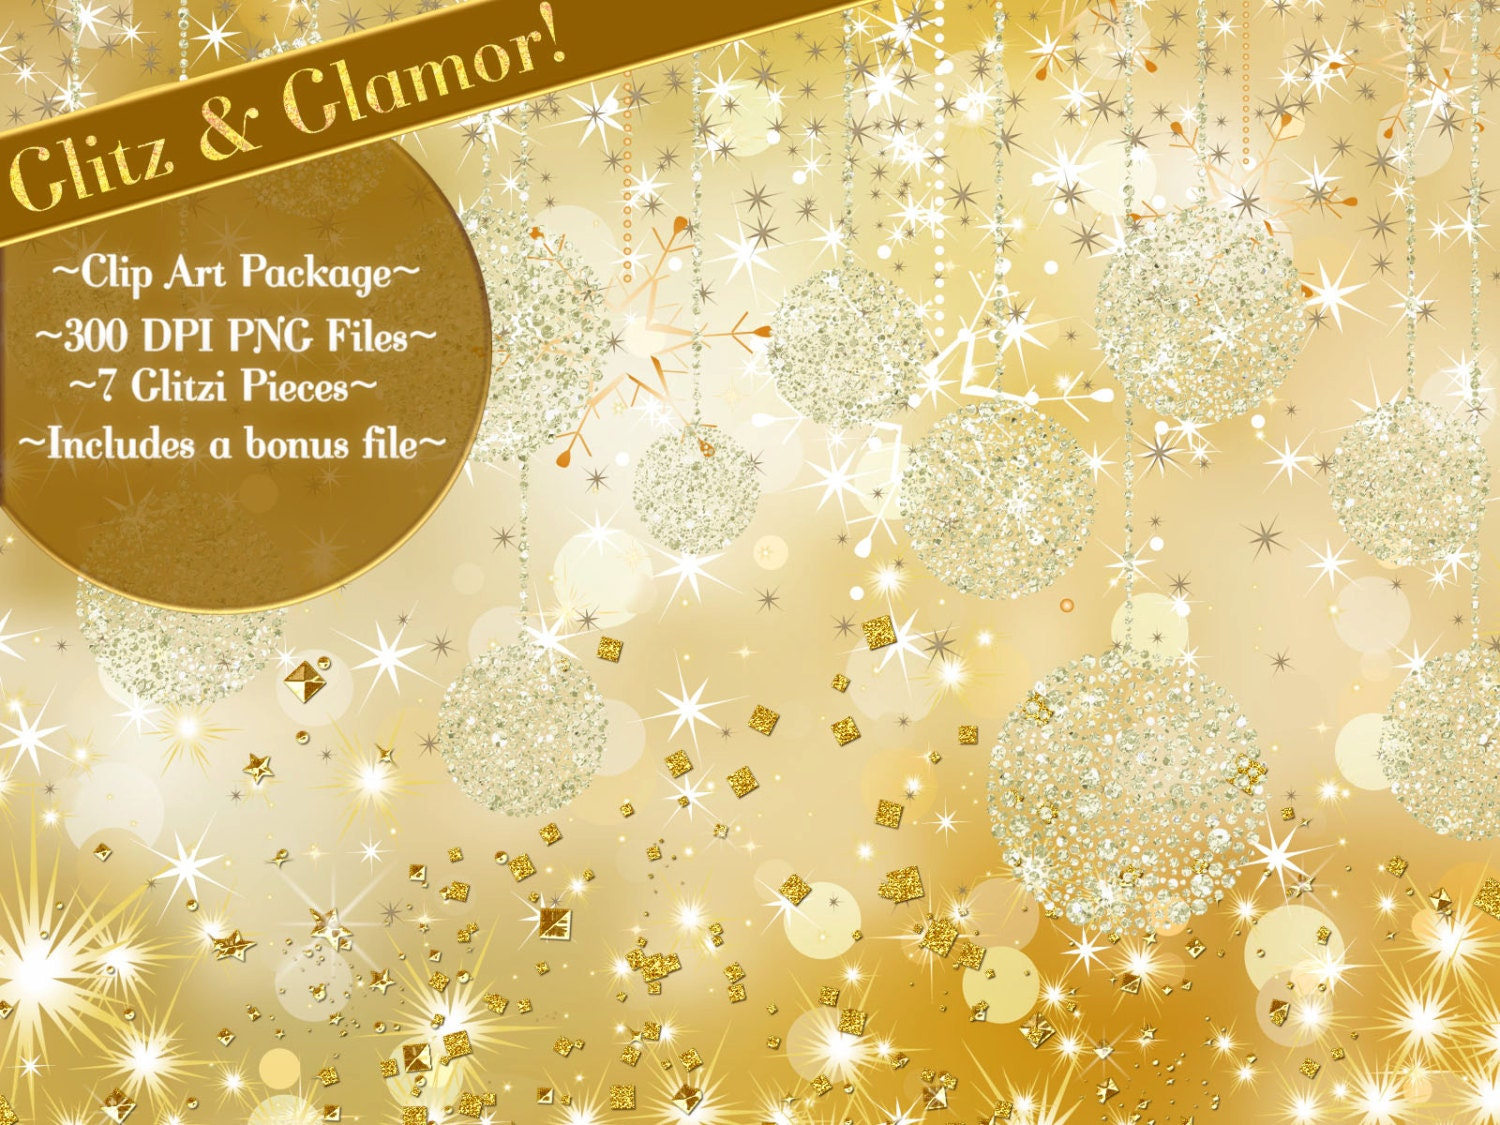 Clip Art Glitter Glamour Clipart Starry Clipart Holiday